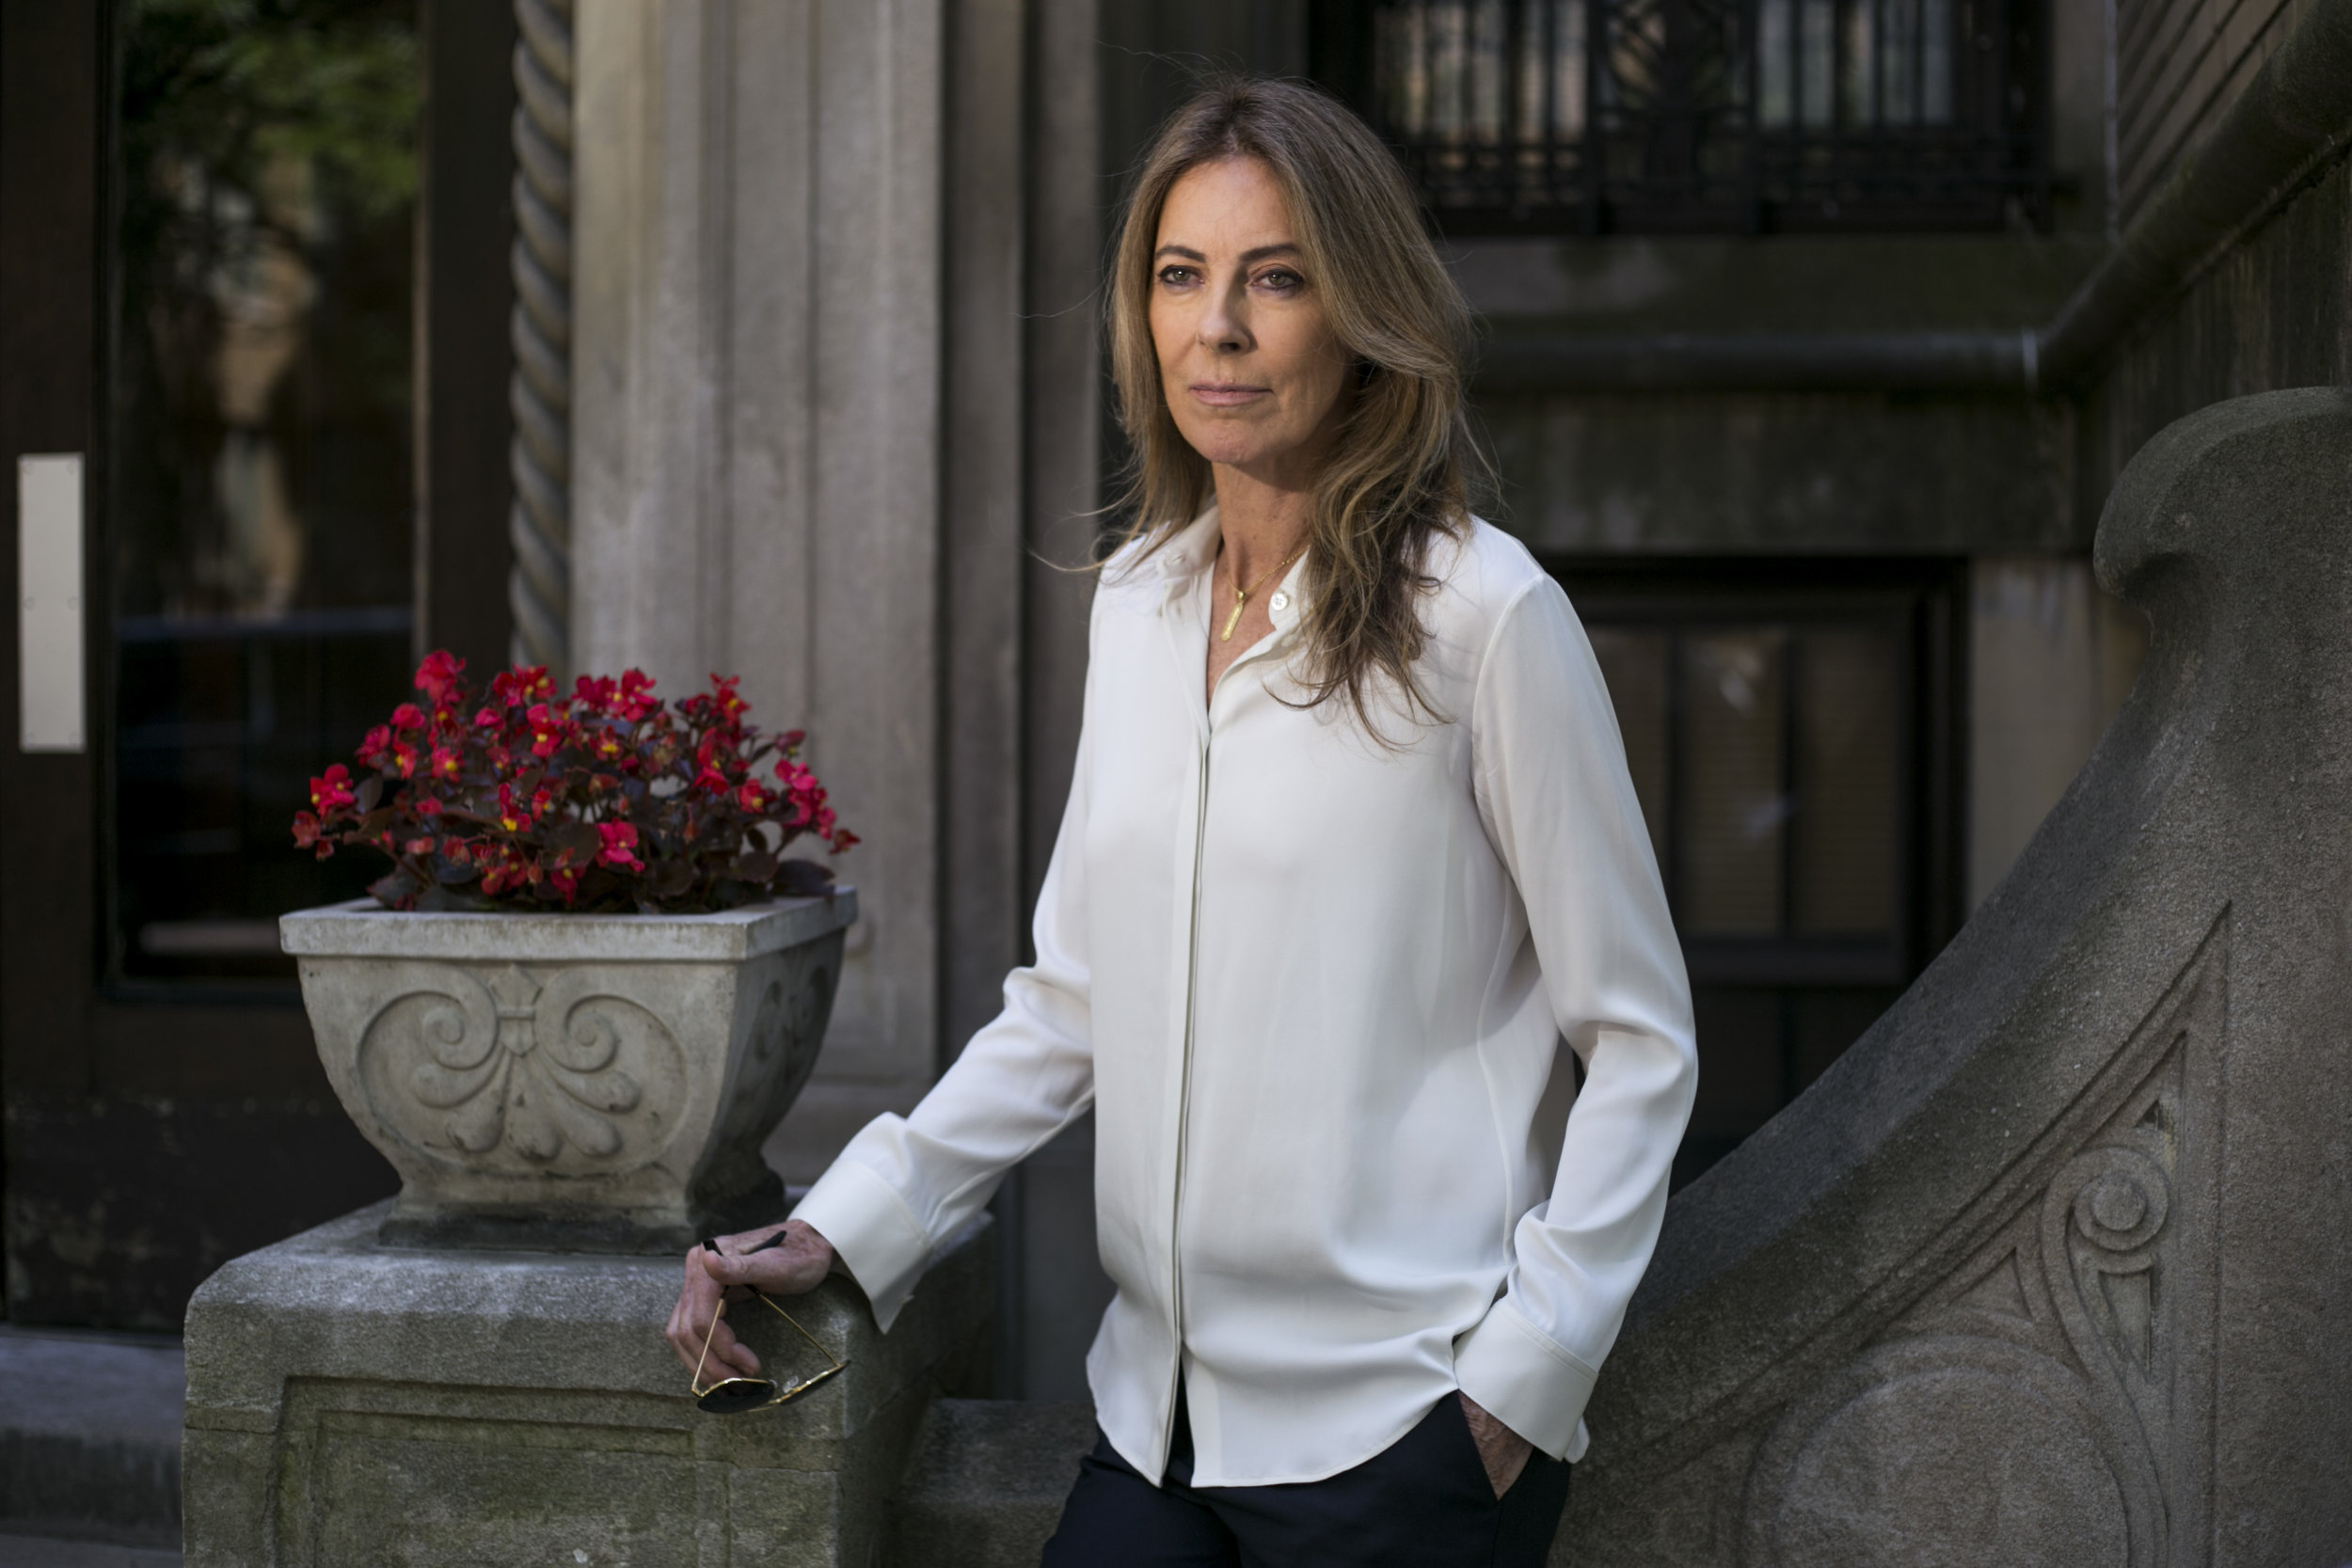 """Director Kathryn Bigelow near the site of the Algiers Motel just days before the world premiere of her film """"Detroit,"""" which chornicles the story of the 1967 Detroit rebellion in Detroit, Mich., on Tuesday, July 25, 2017."""